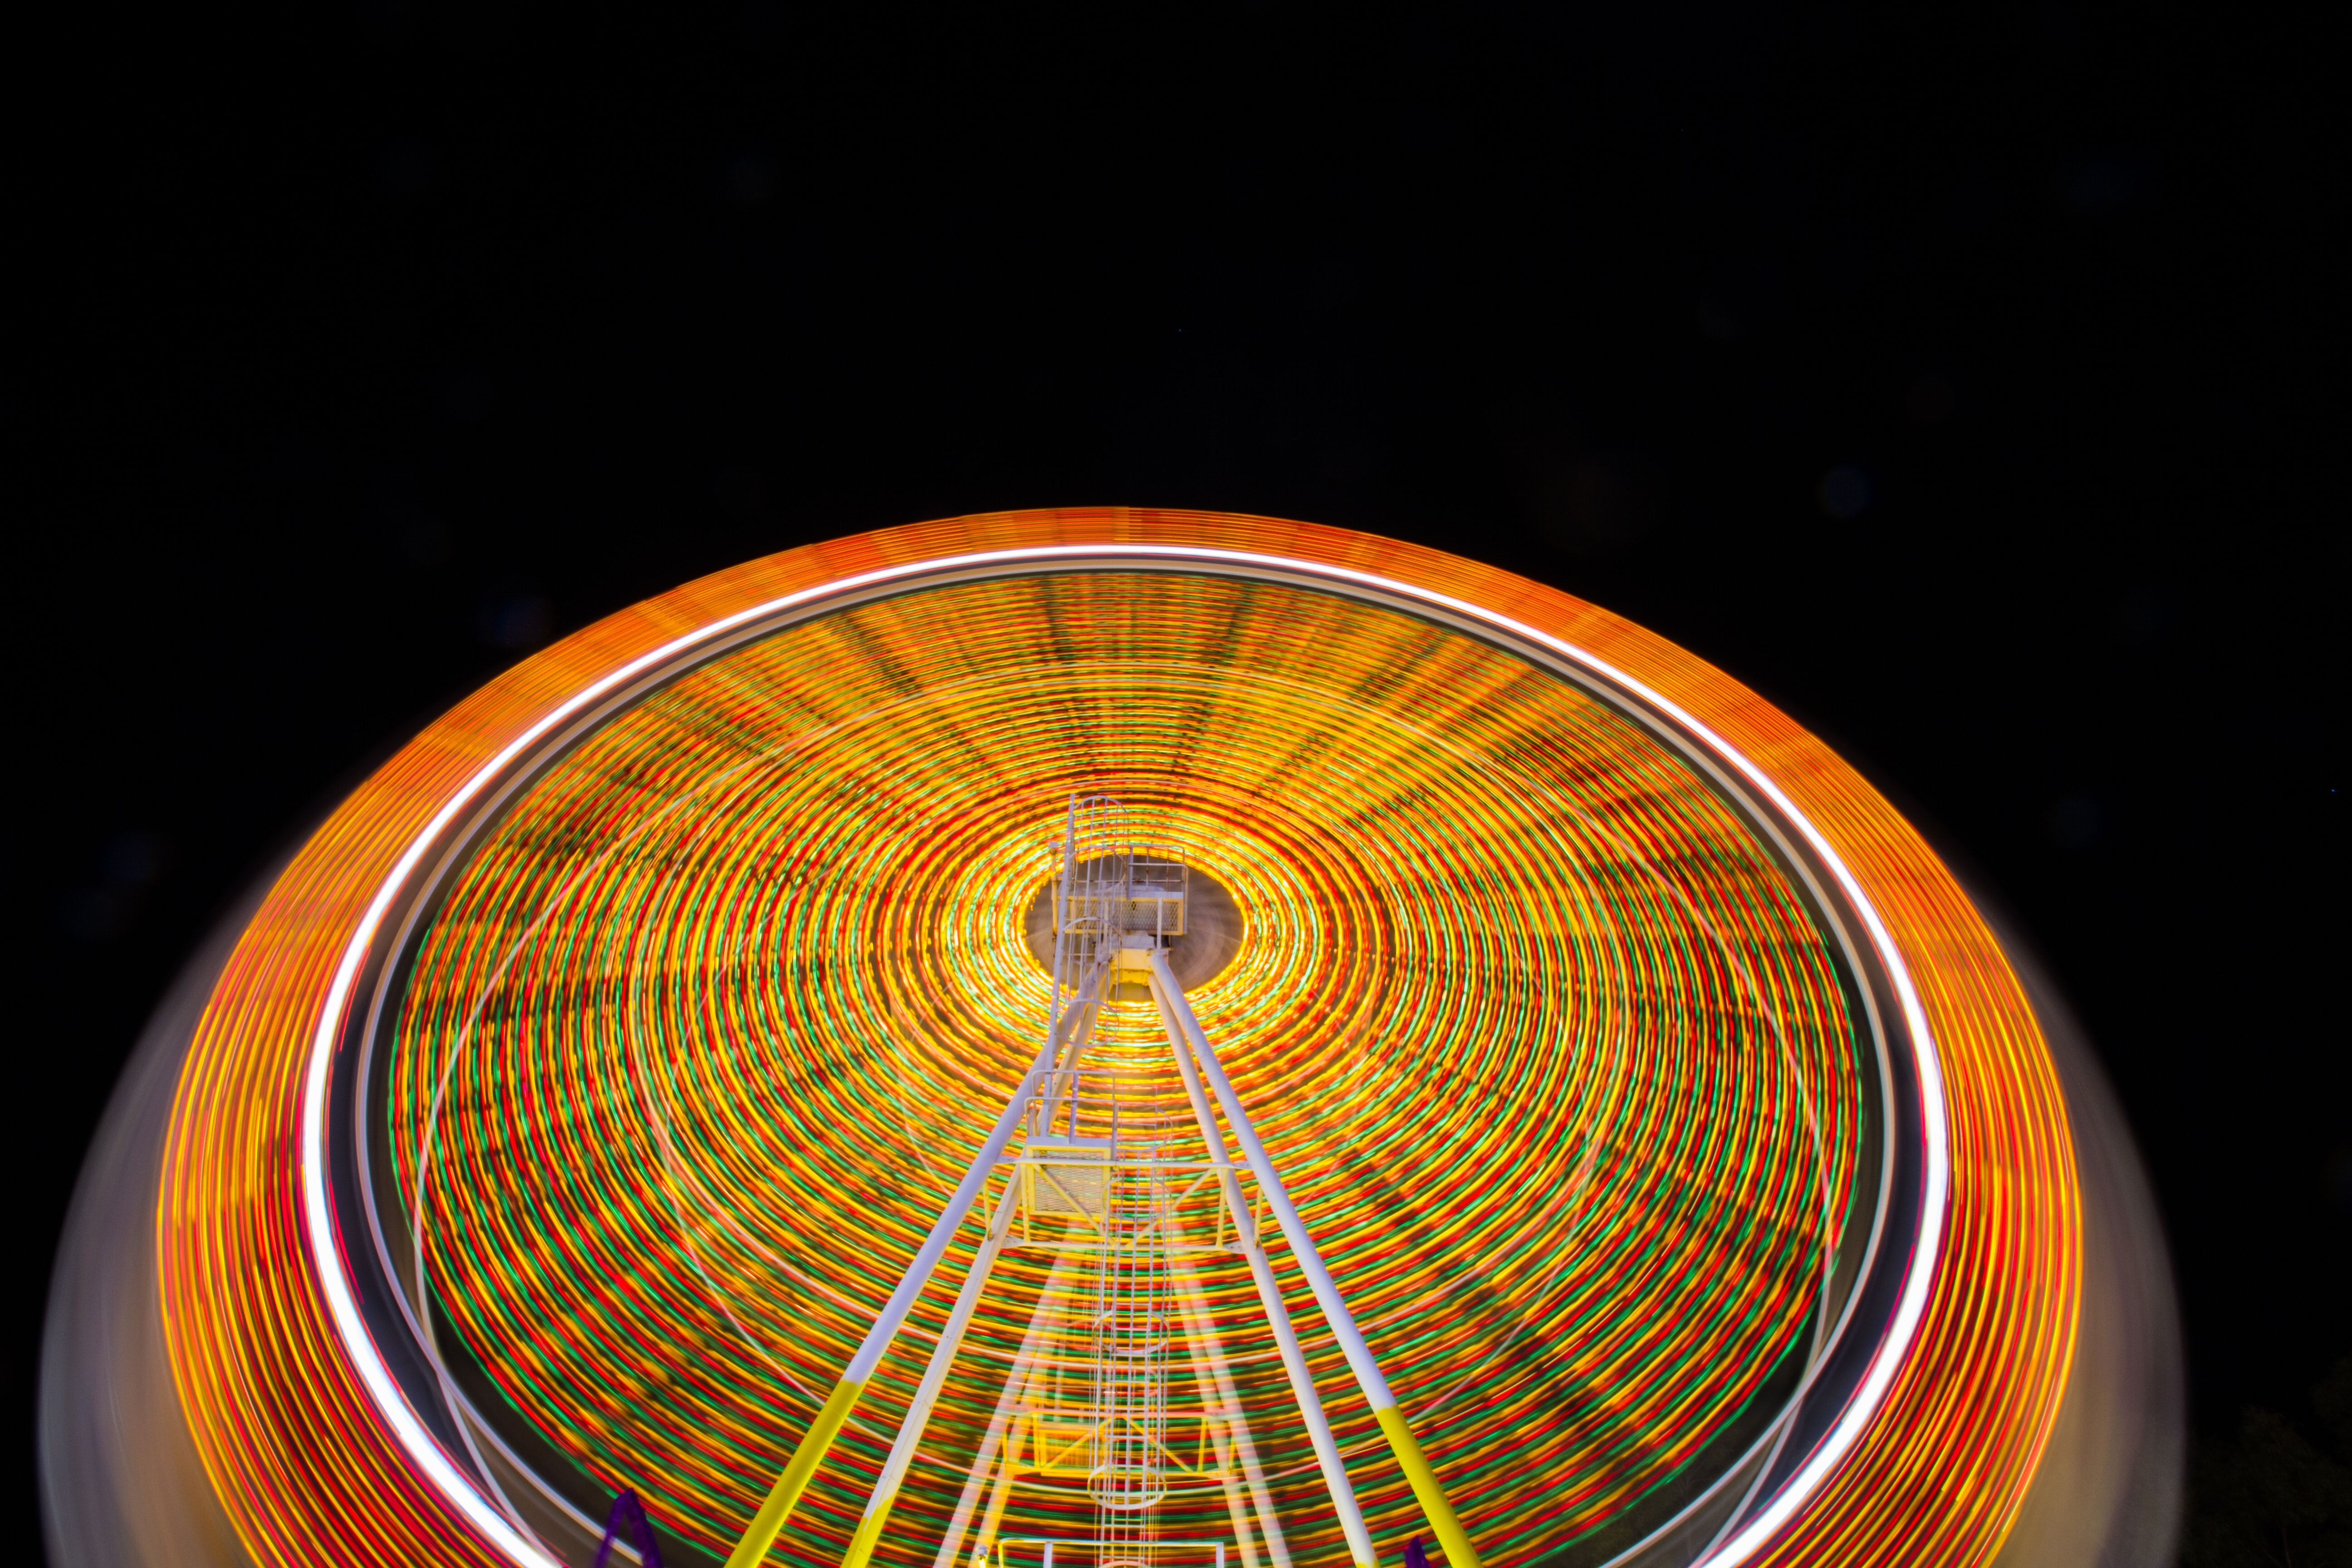 A time exposure shot of a ferris wheel with vivid orange and yellow light trails